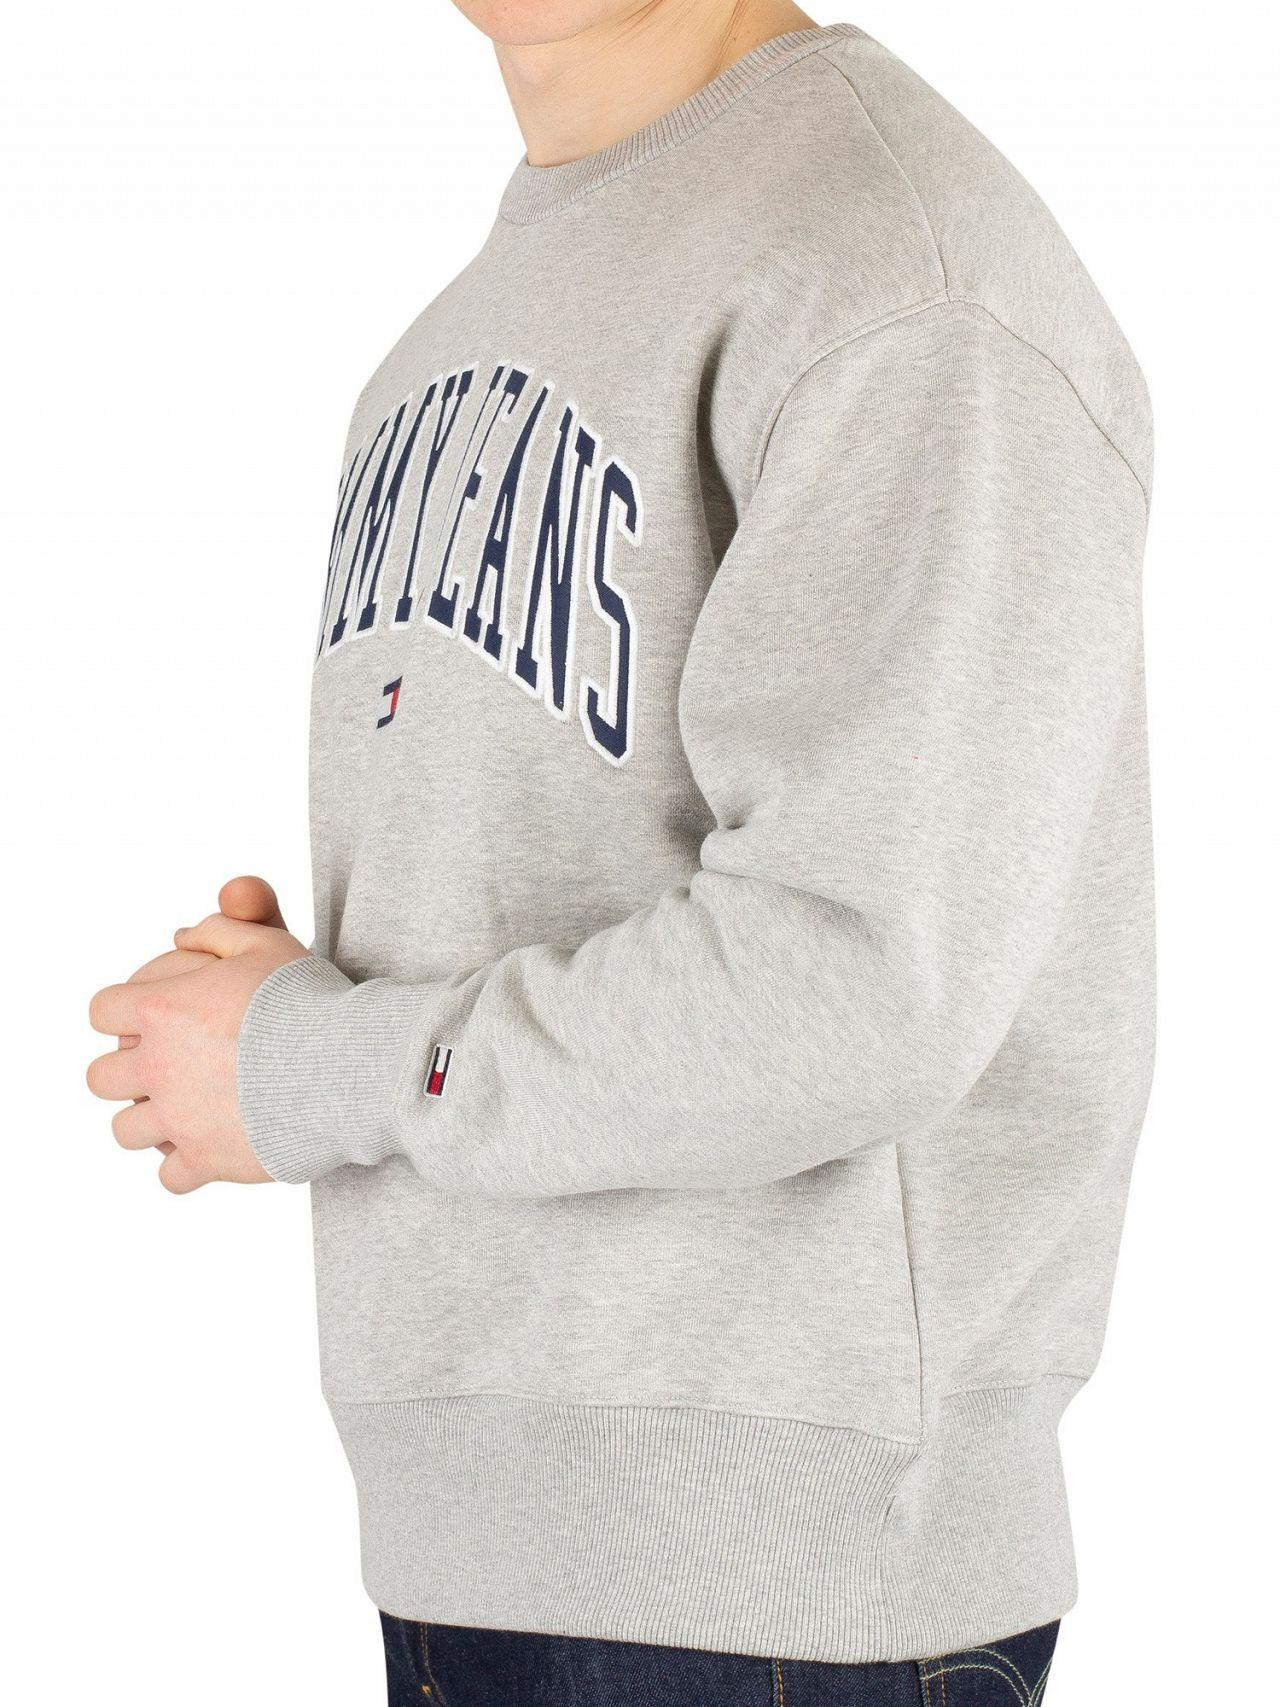 7f359a0f Tommy Hilfiger Light Grey Heather Clean Collegiate Sweatshirt in Gray for  Men - Lyst